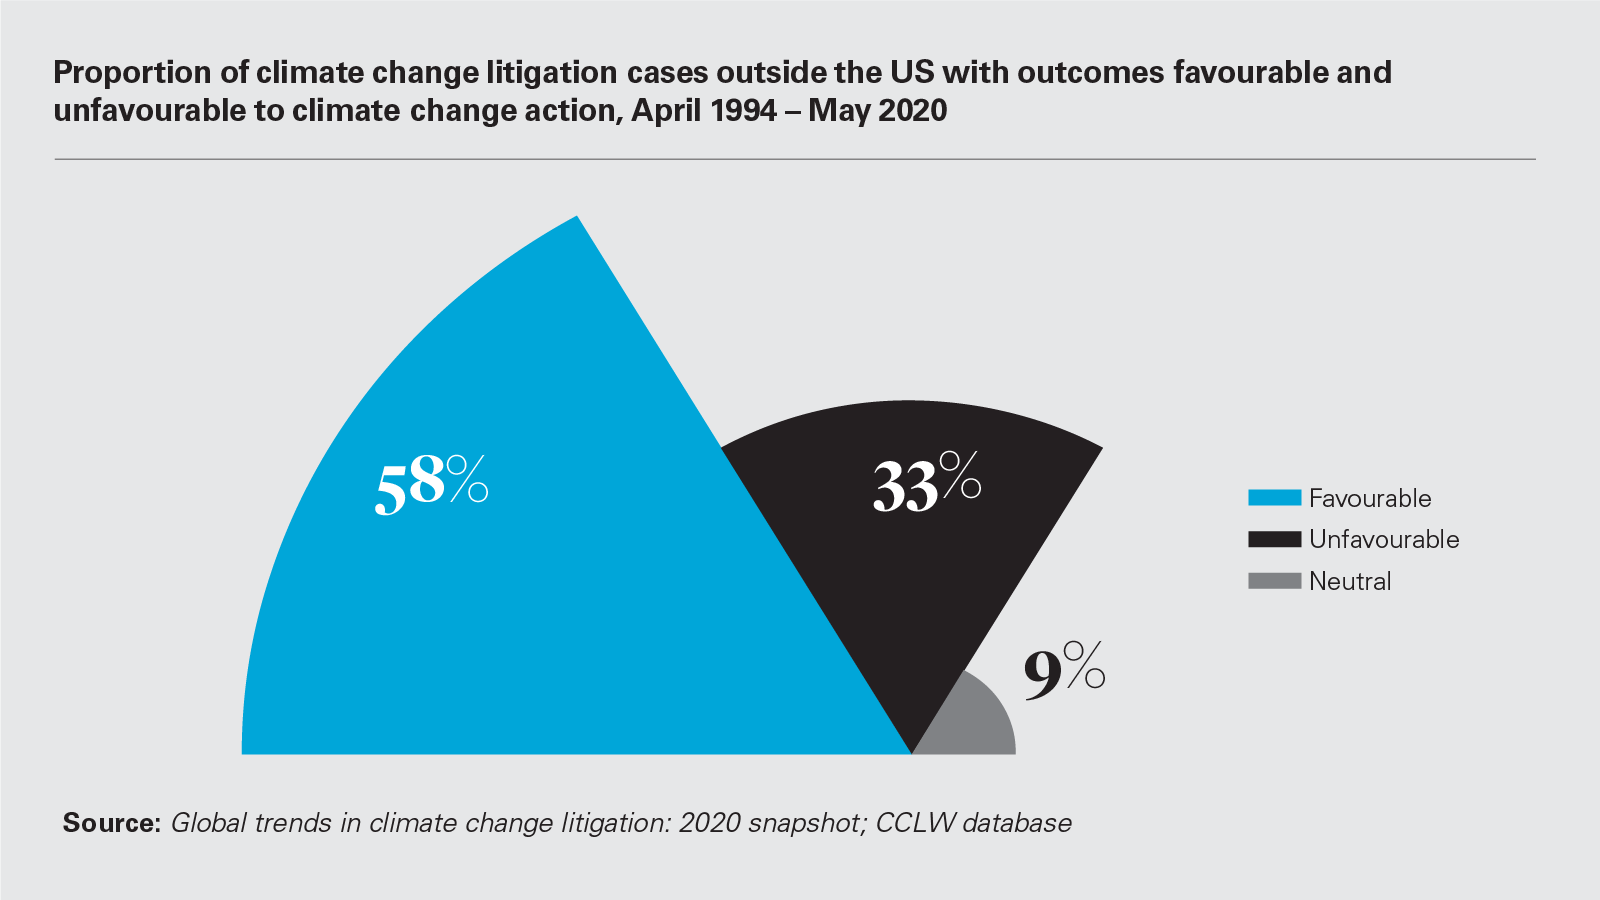 Proportion of climate change litigation cases outside the US